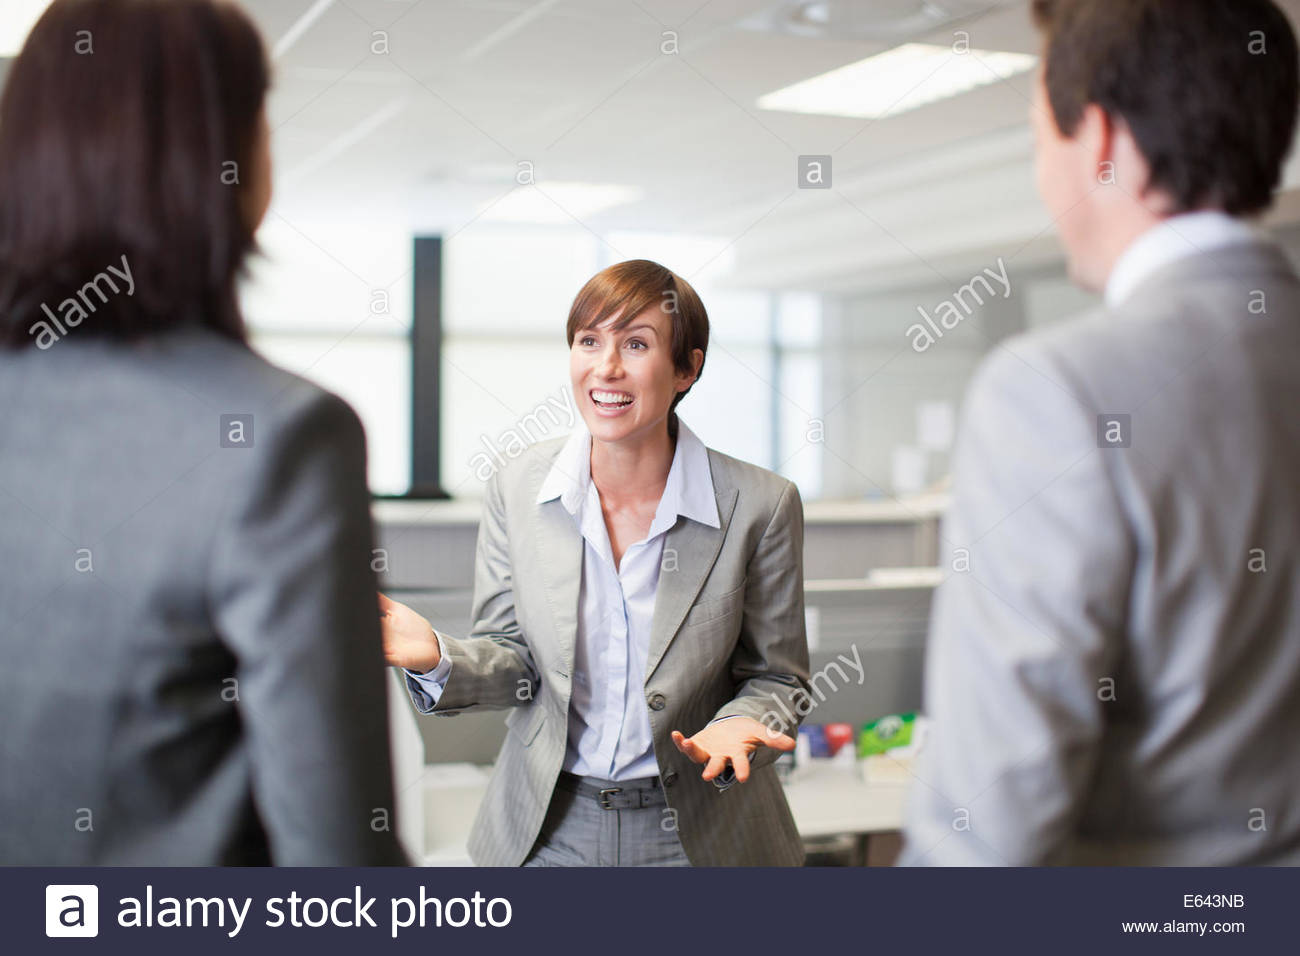 Businesswoman gesturing and talking to co-workers - Stock Image